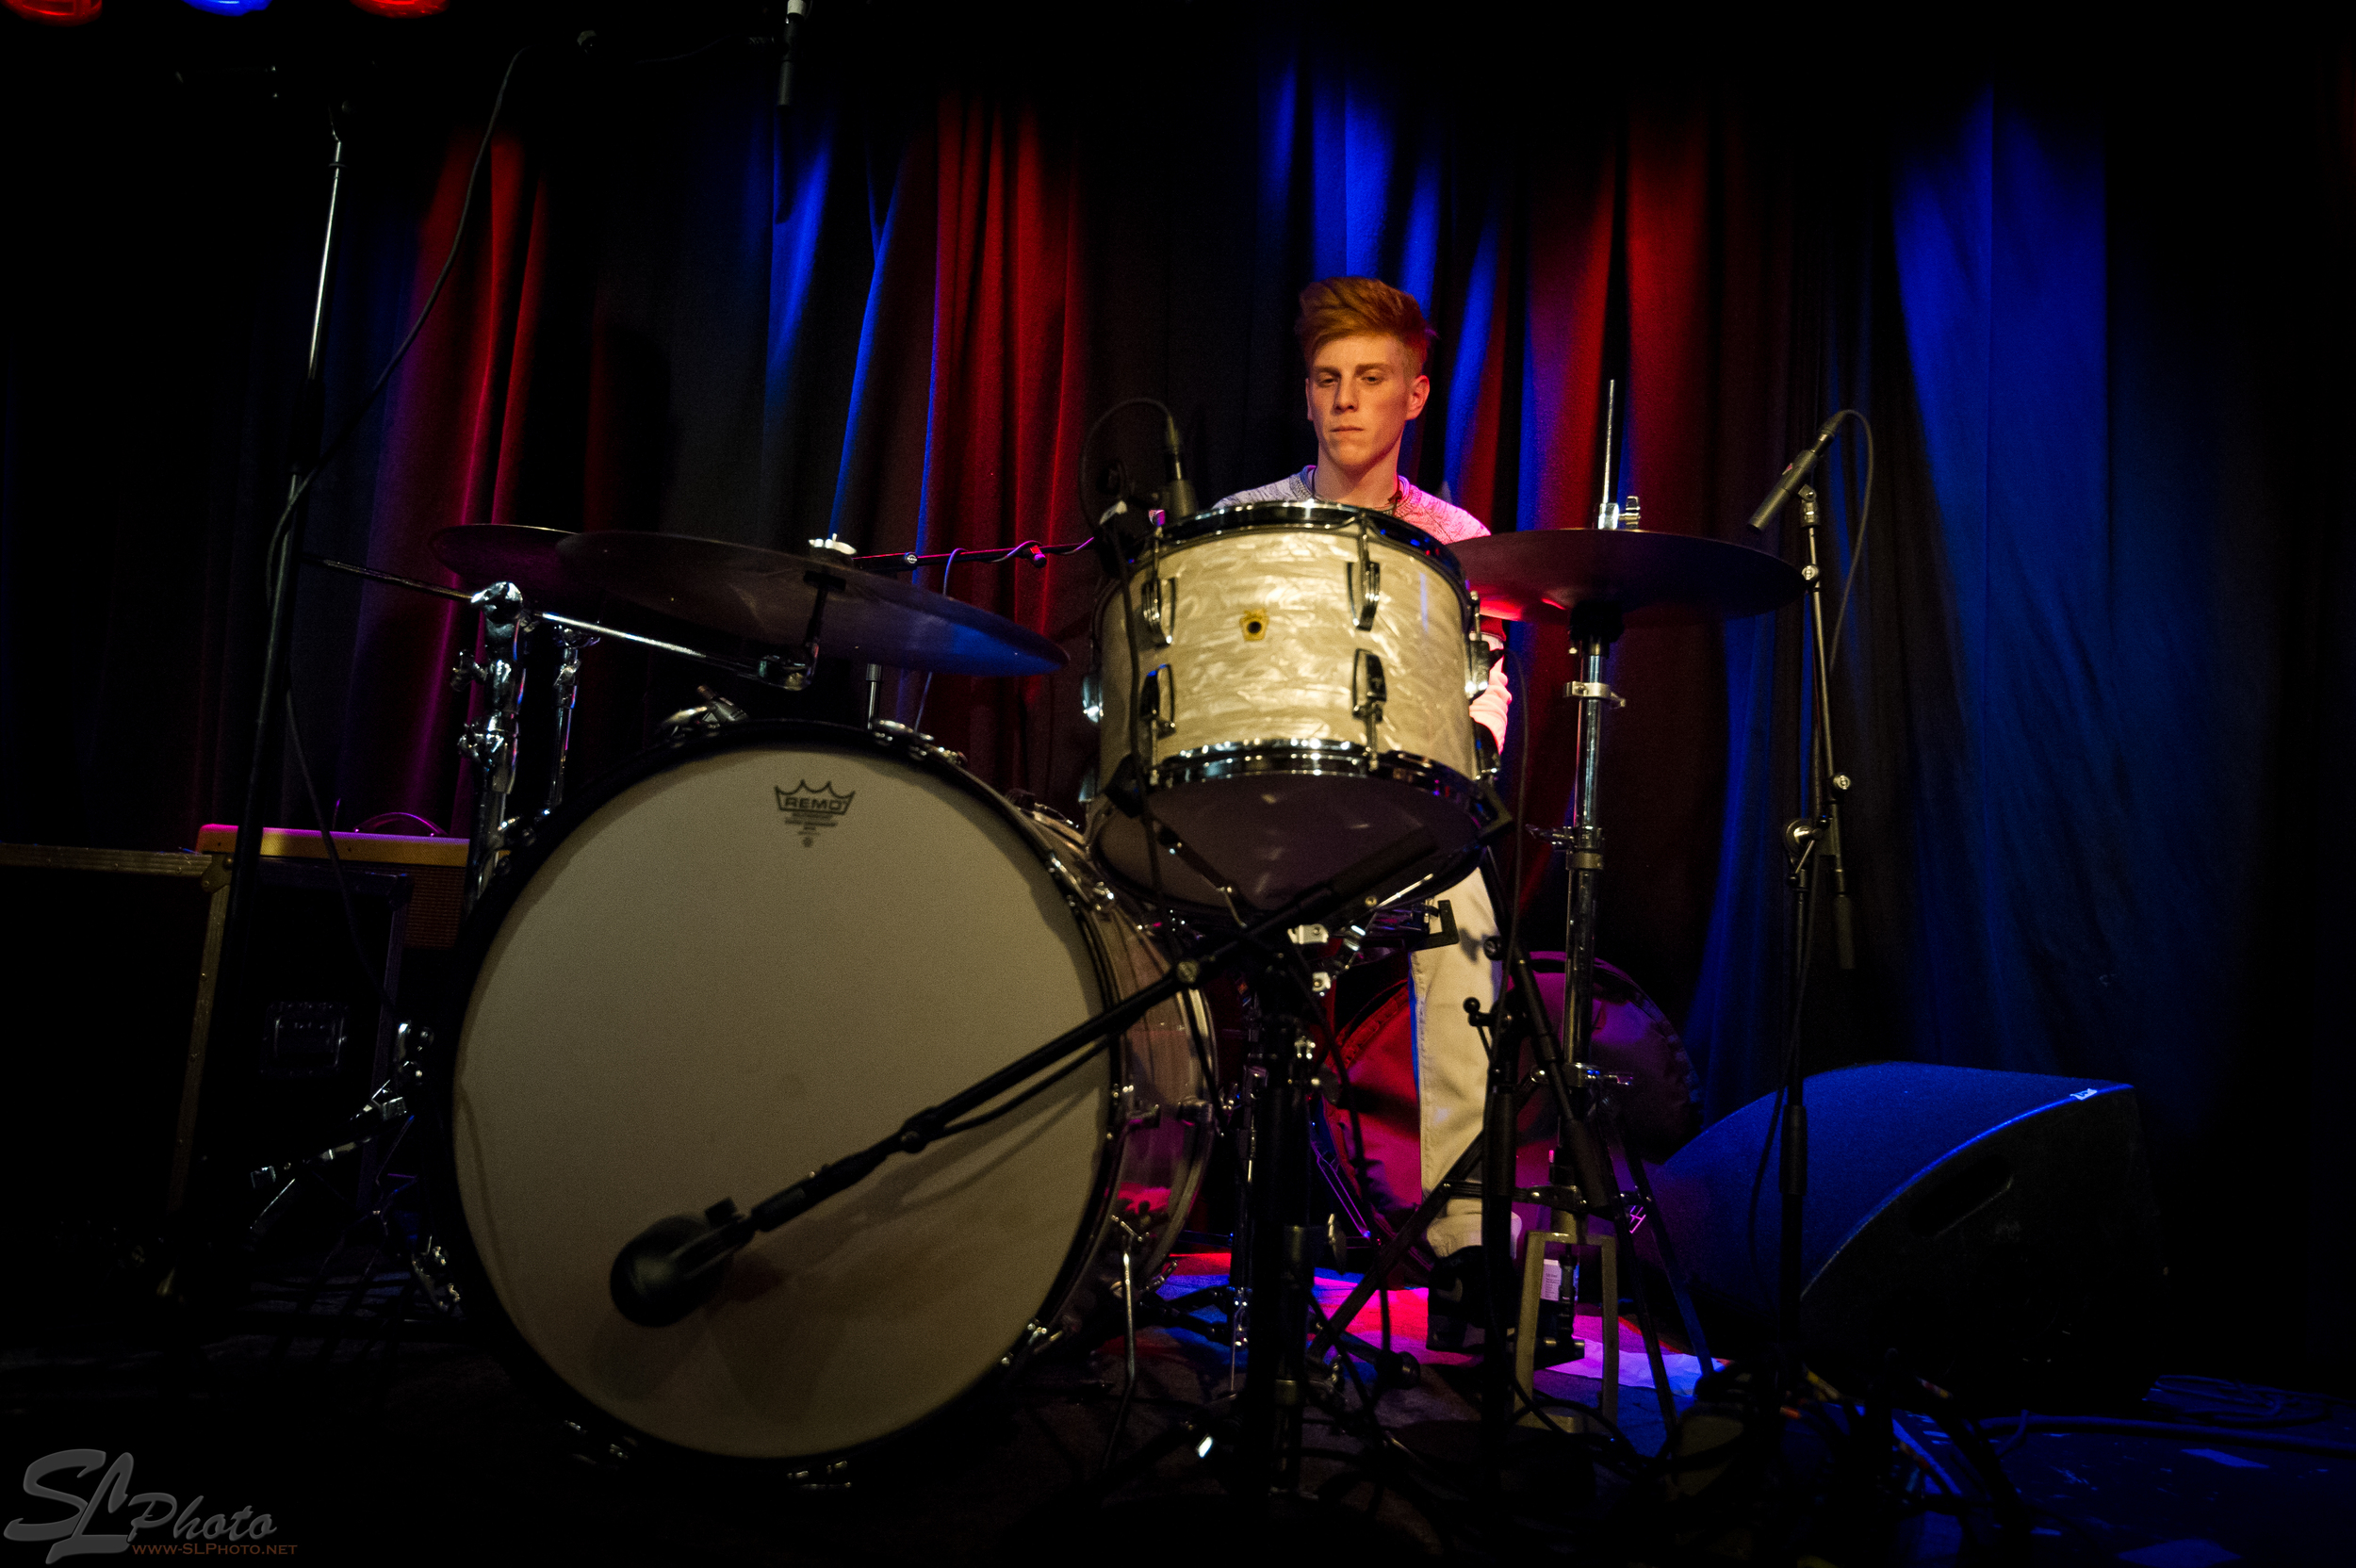 Levant Özdemir on the drums